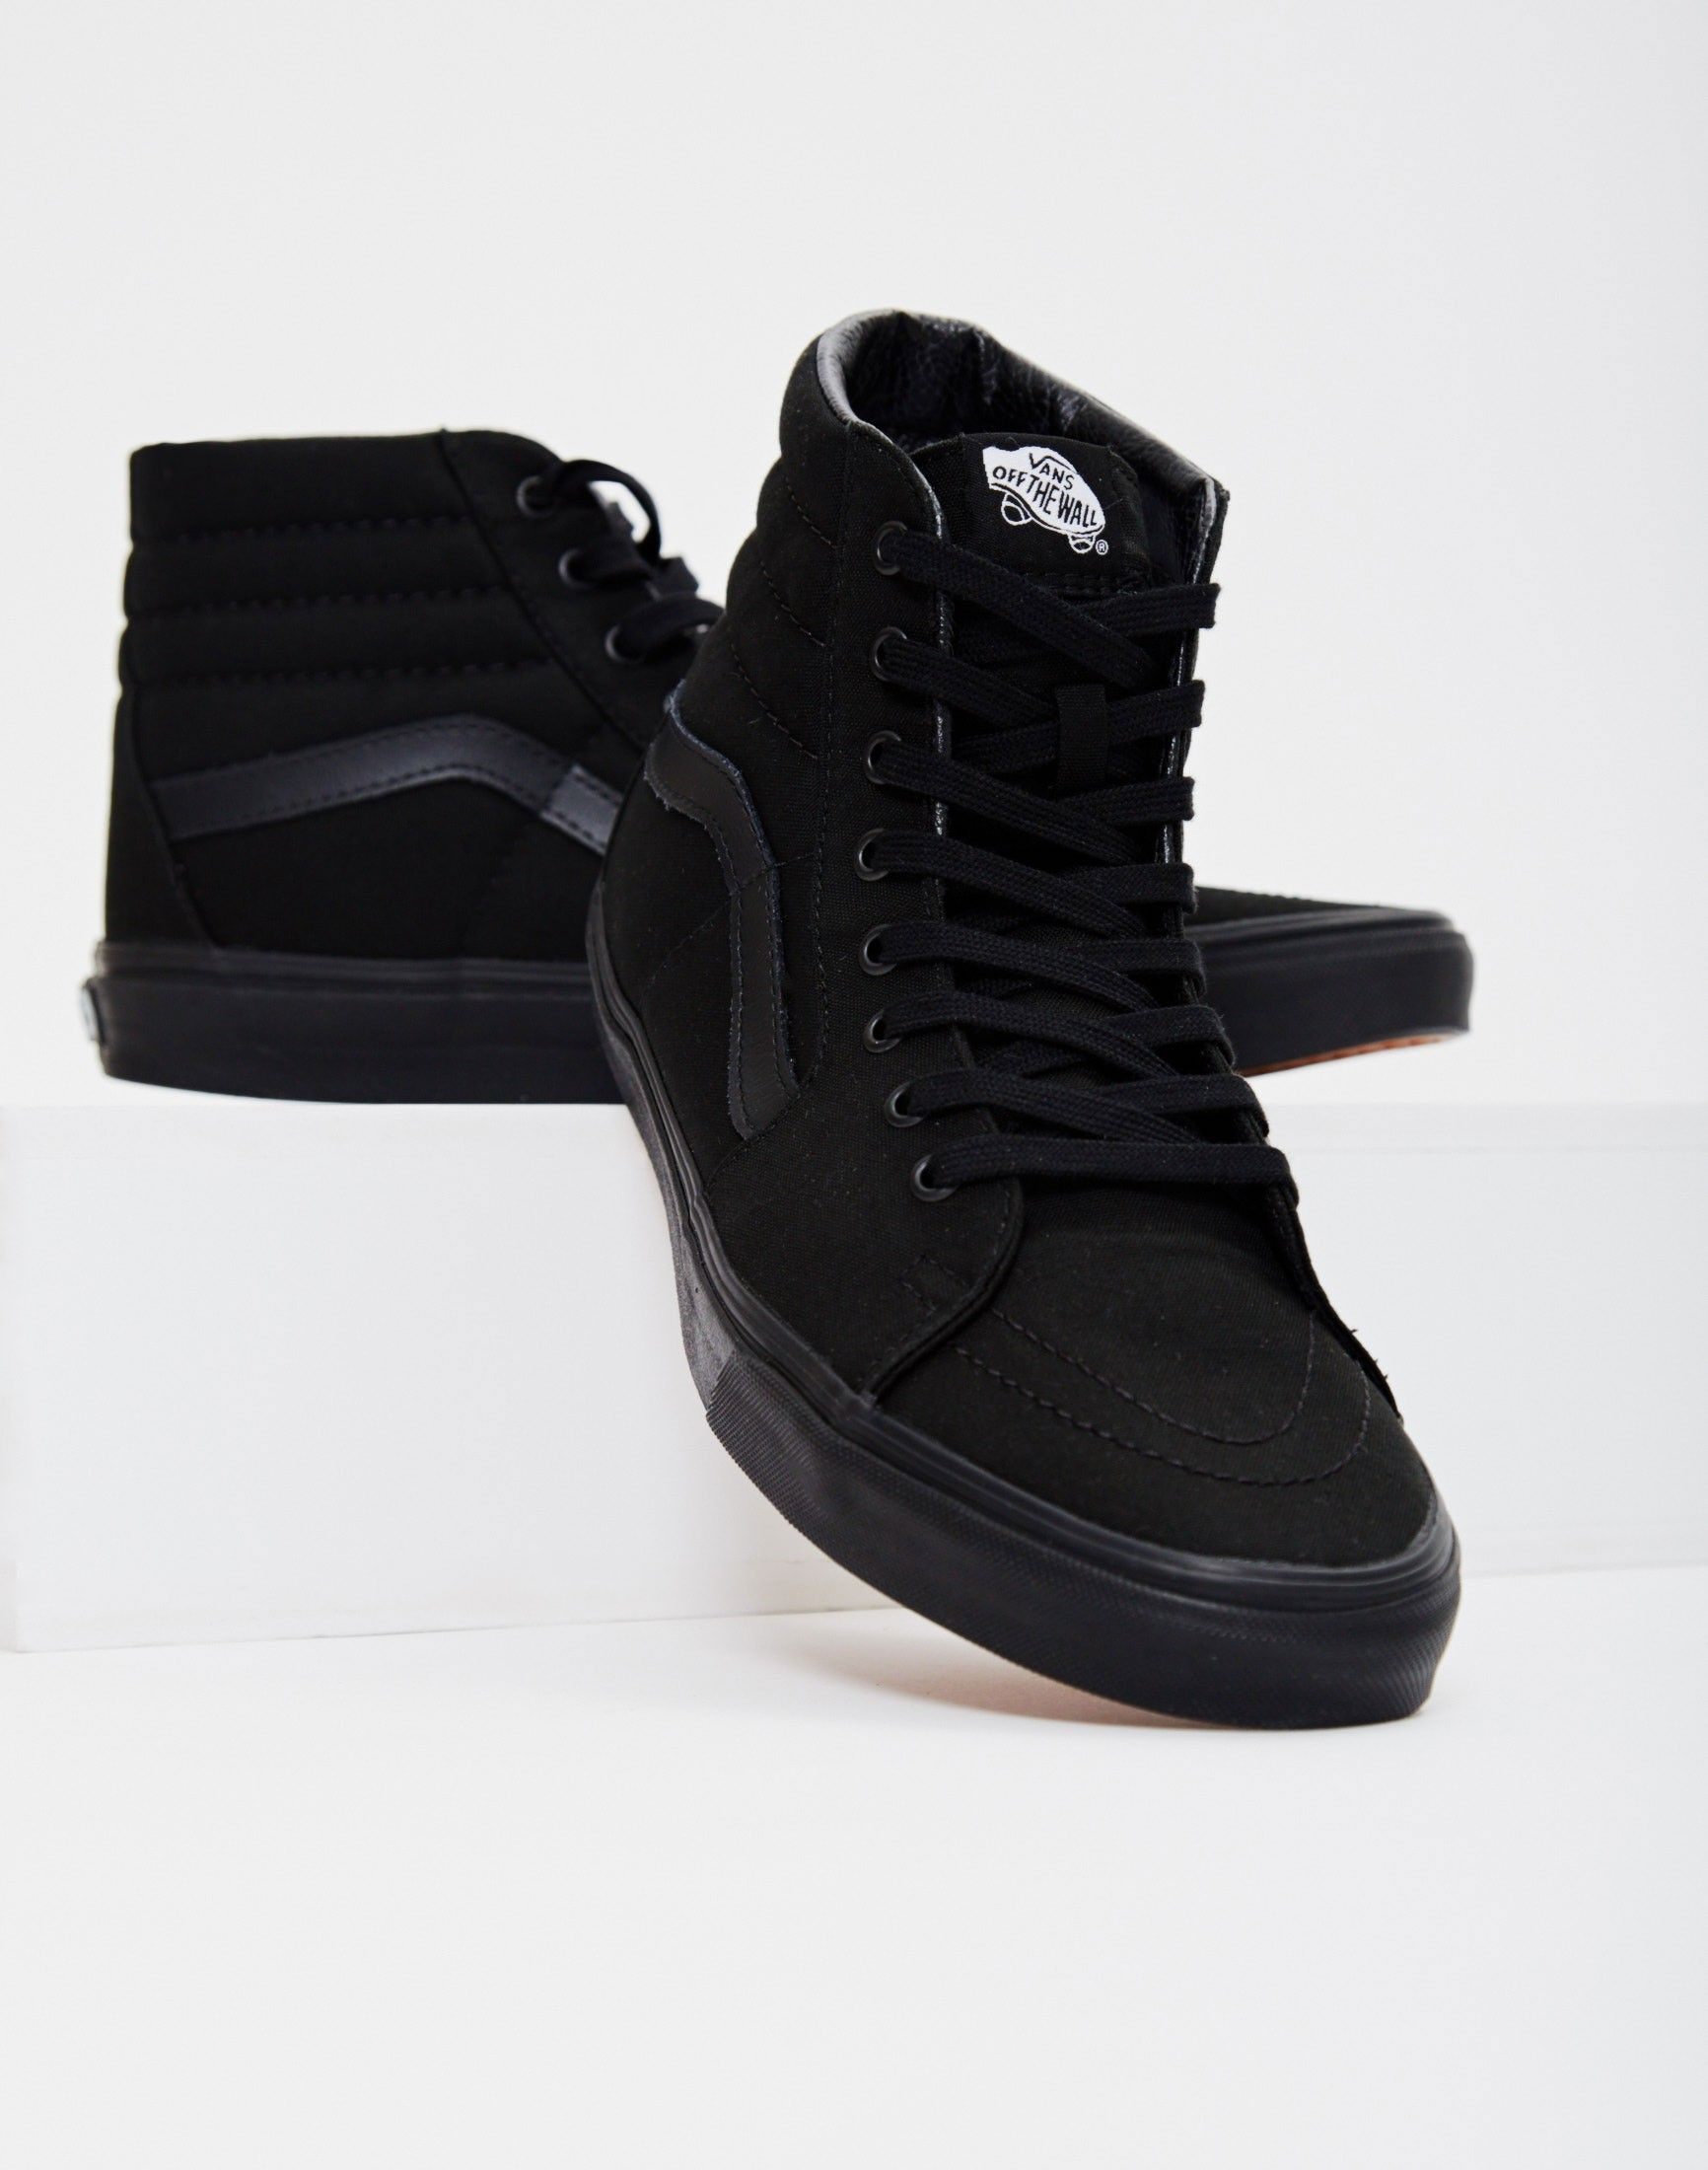 best service 475eb 78f05 Vans Sk8-Hi Trainers All Black   SHOP NOW at The Idle Man    StyleMadeEasy